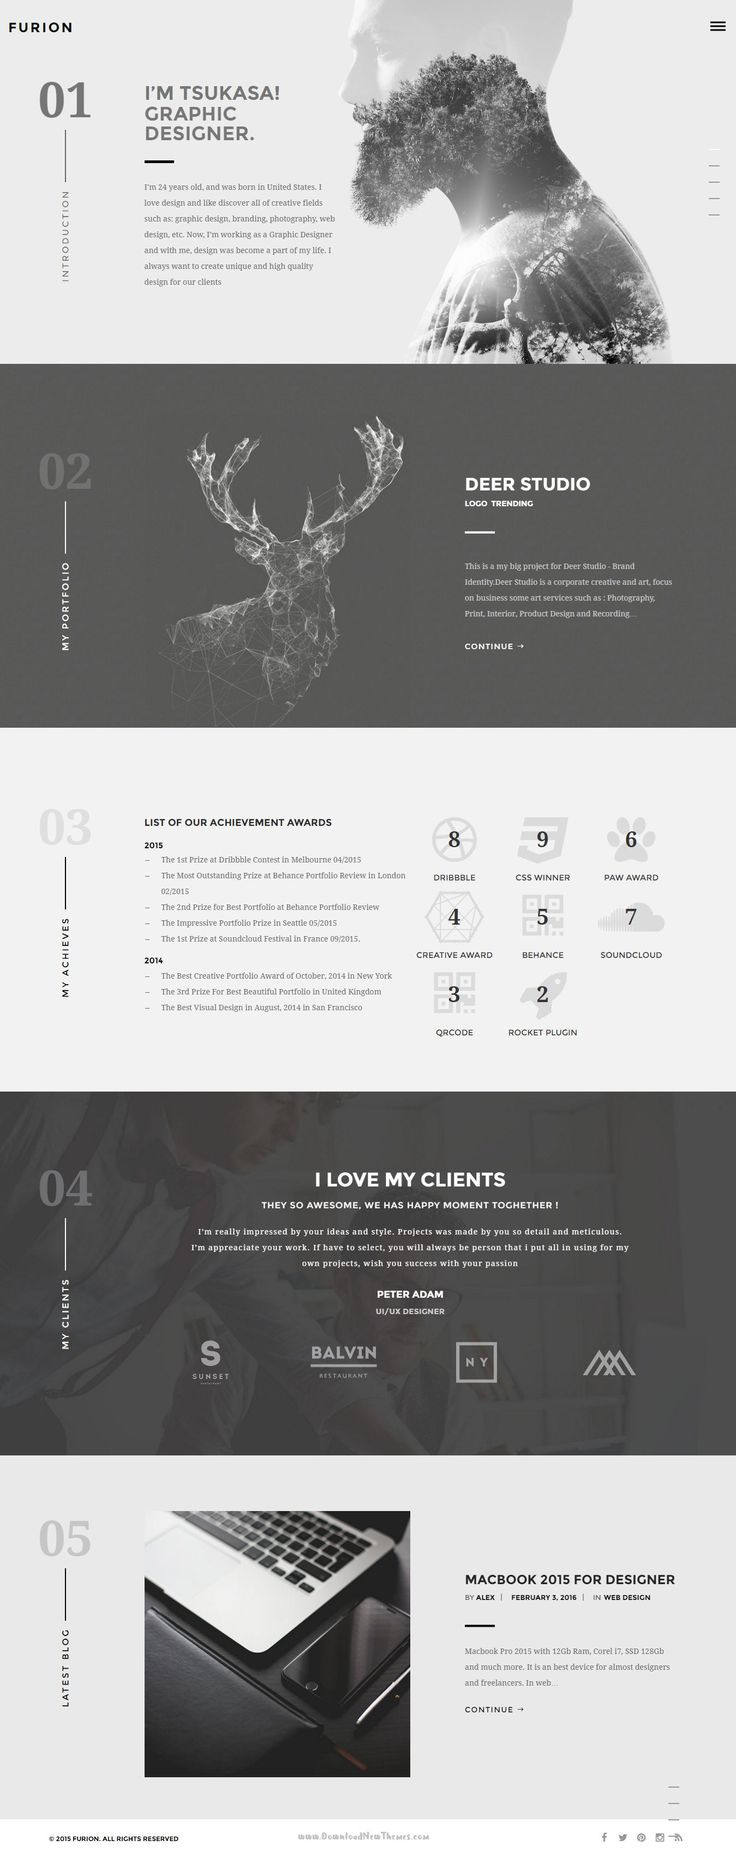 Furion - Creative Blog & Portfolio WordPress Theme > It's specifically designed to create charming, minimal blog and portfolios which give an unforgettable impression to potential customers and employers. #WordPressBlog #creativetheme Download Now➝ http://themeforest.net/item/furion-creative-blog-portfolio-wordpress-theme-/14825591?ref=Datasata